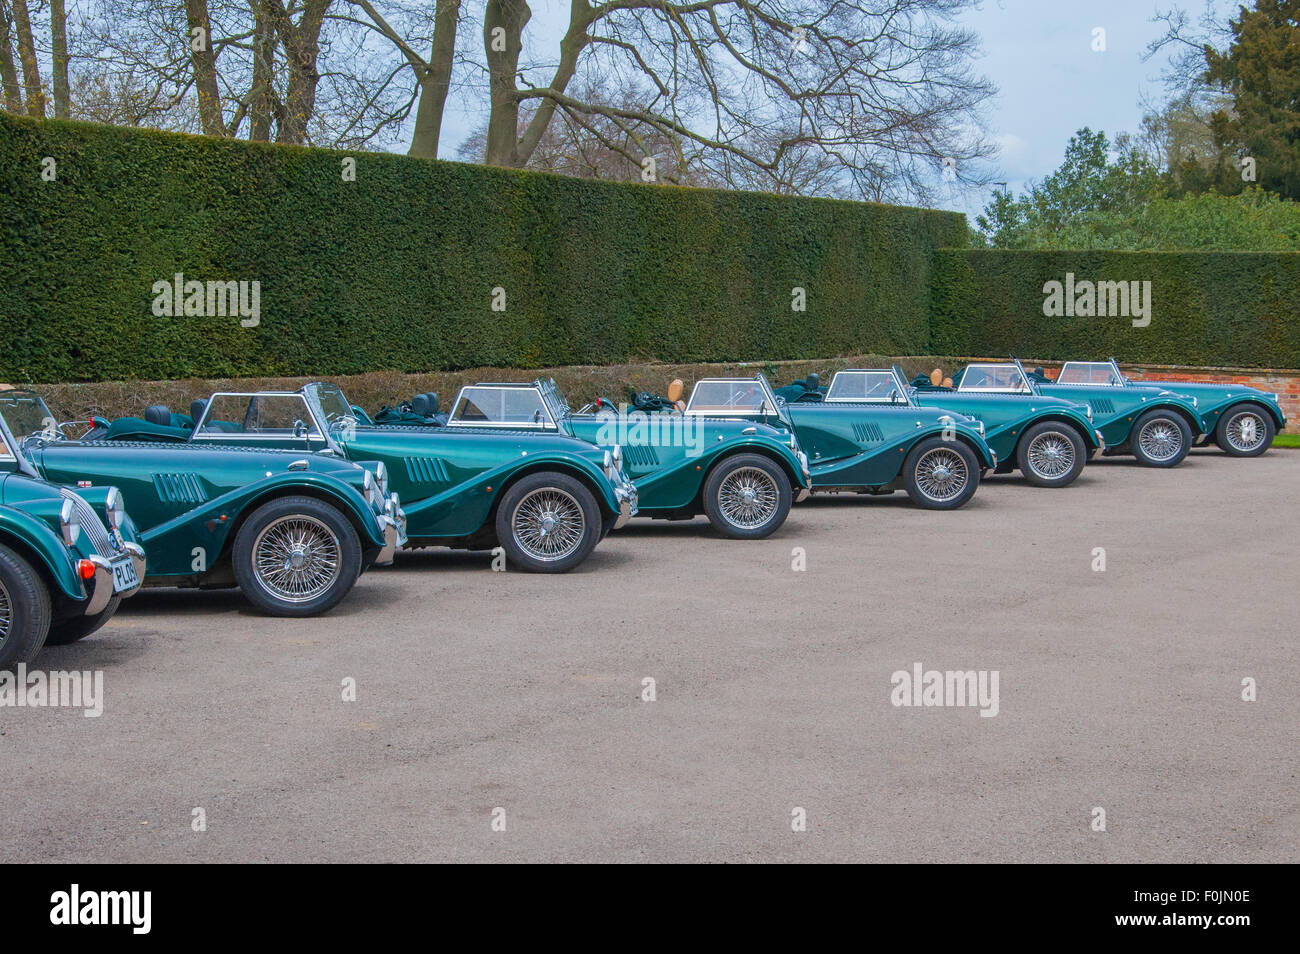 A line of Morgan sports cars. - Stock Image